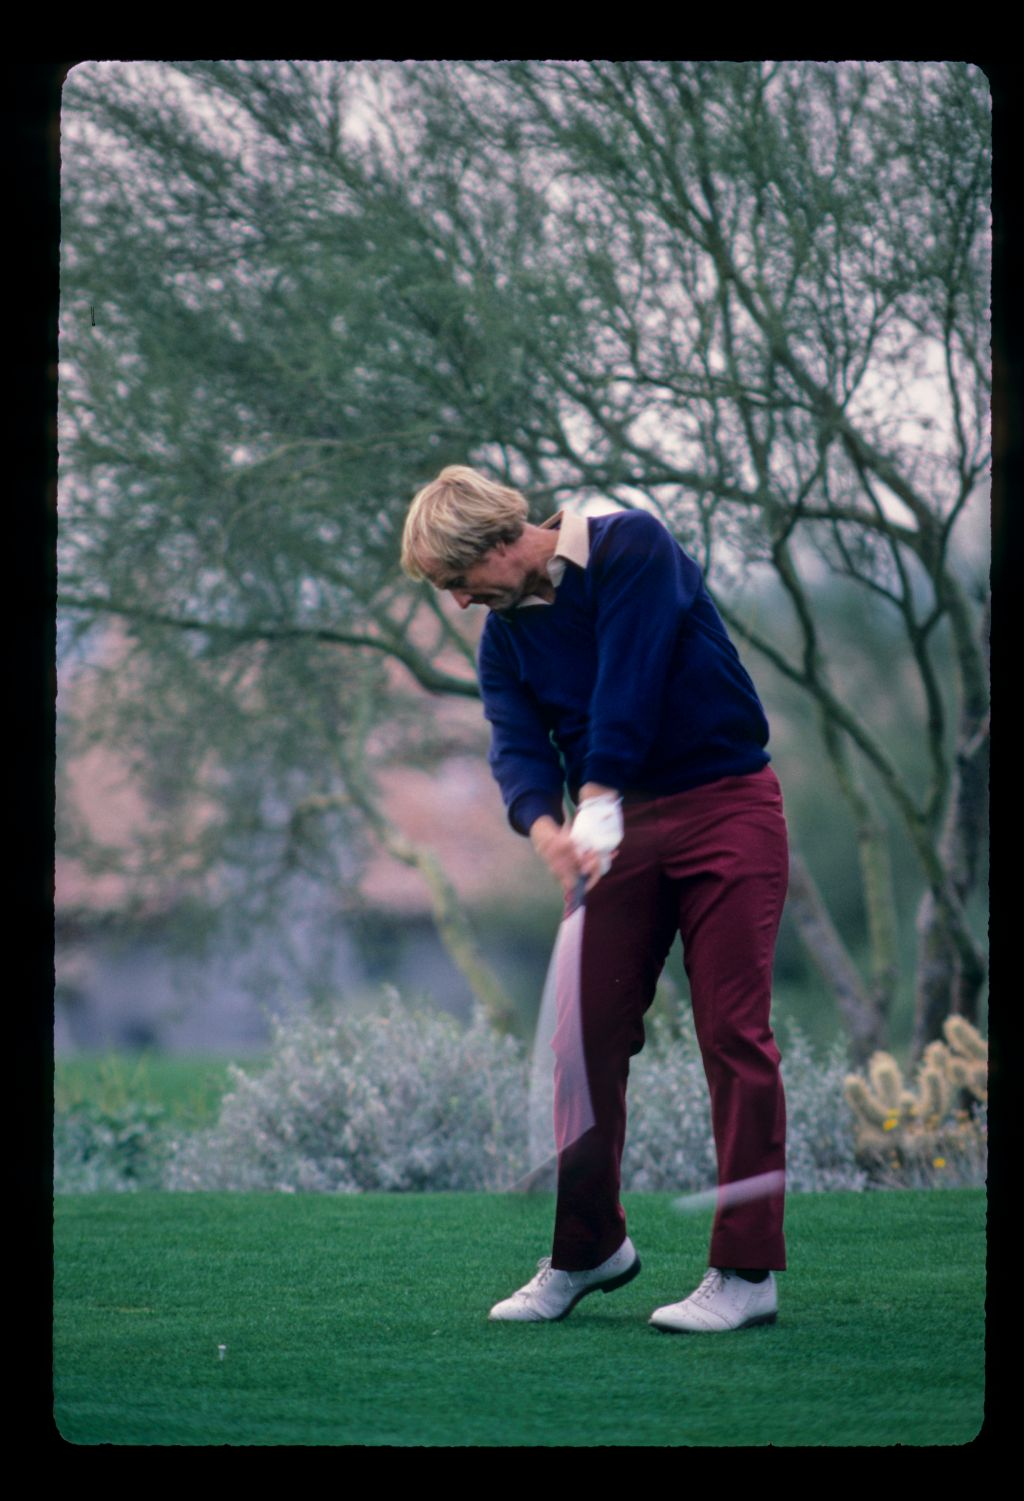 Jack Nicklaus powering through a drive during the 1984 Skins Game